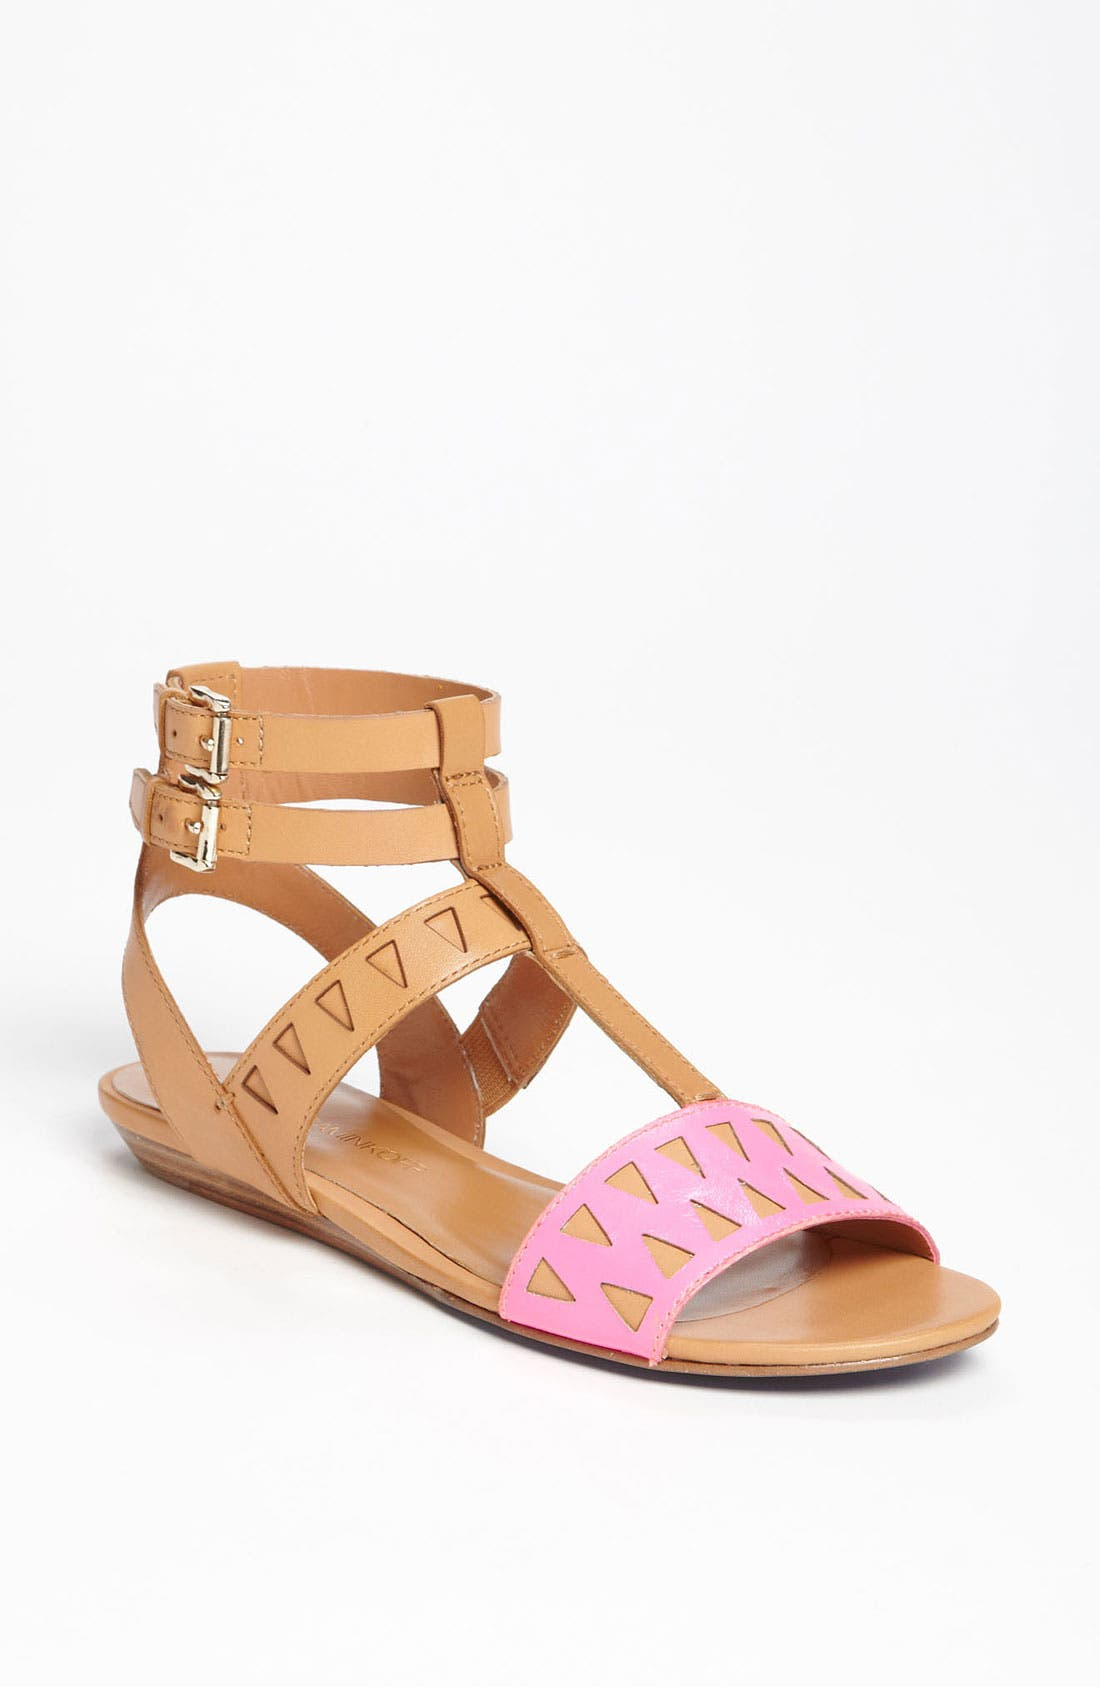 Alternate Image 1 Selected - Rebecca Minkoff 'Barb' Sandal